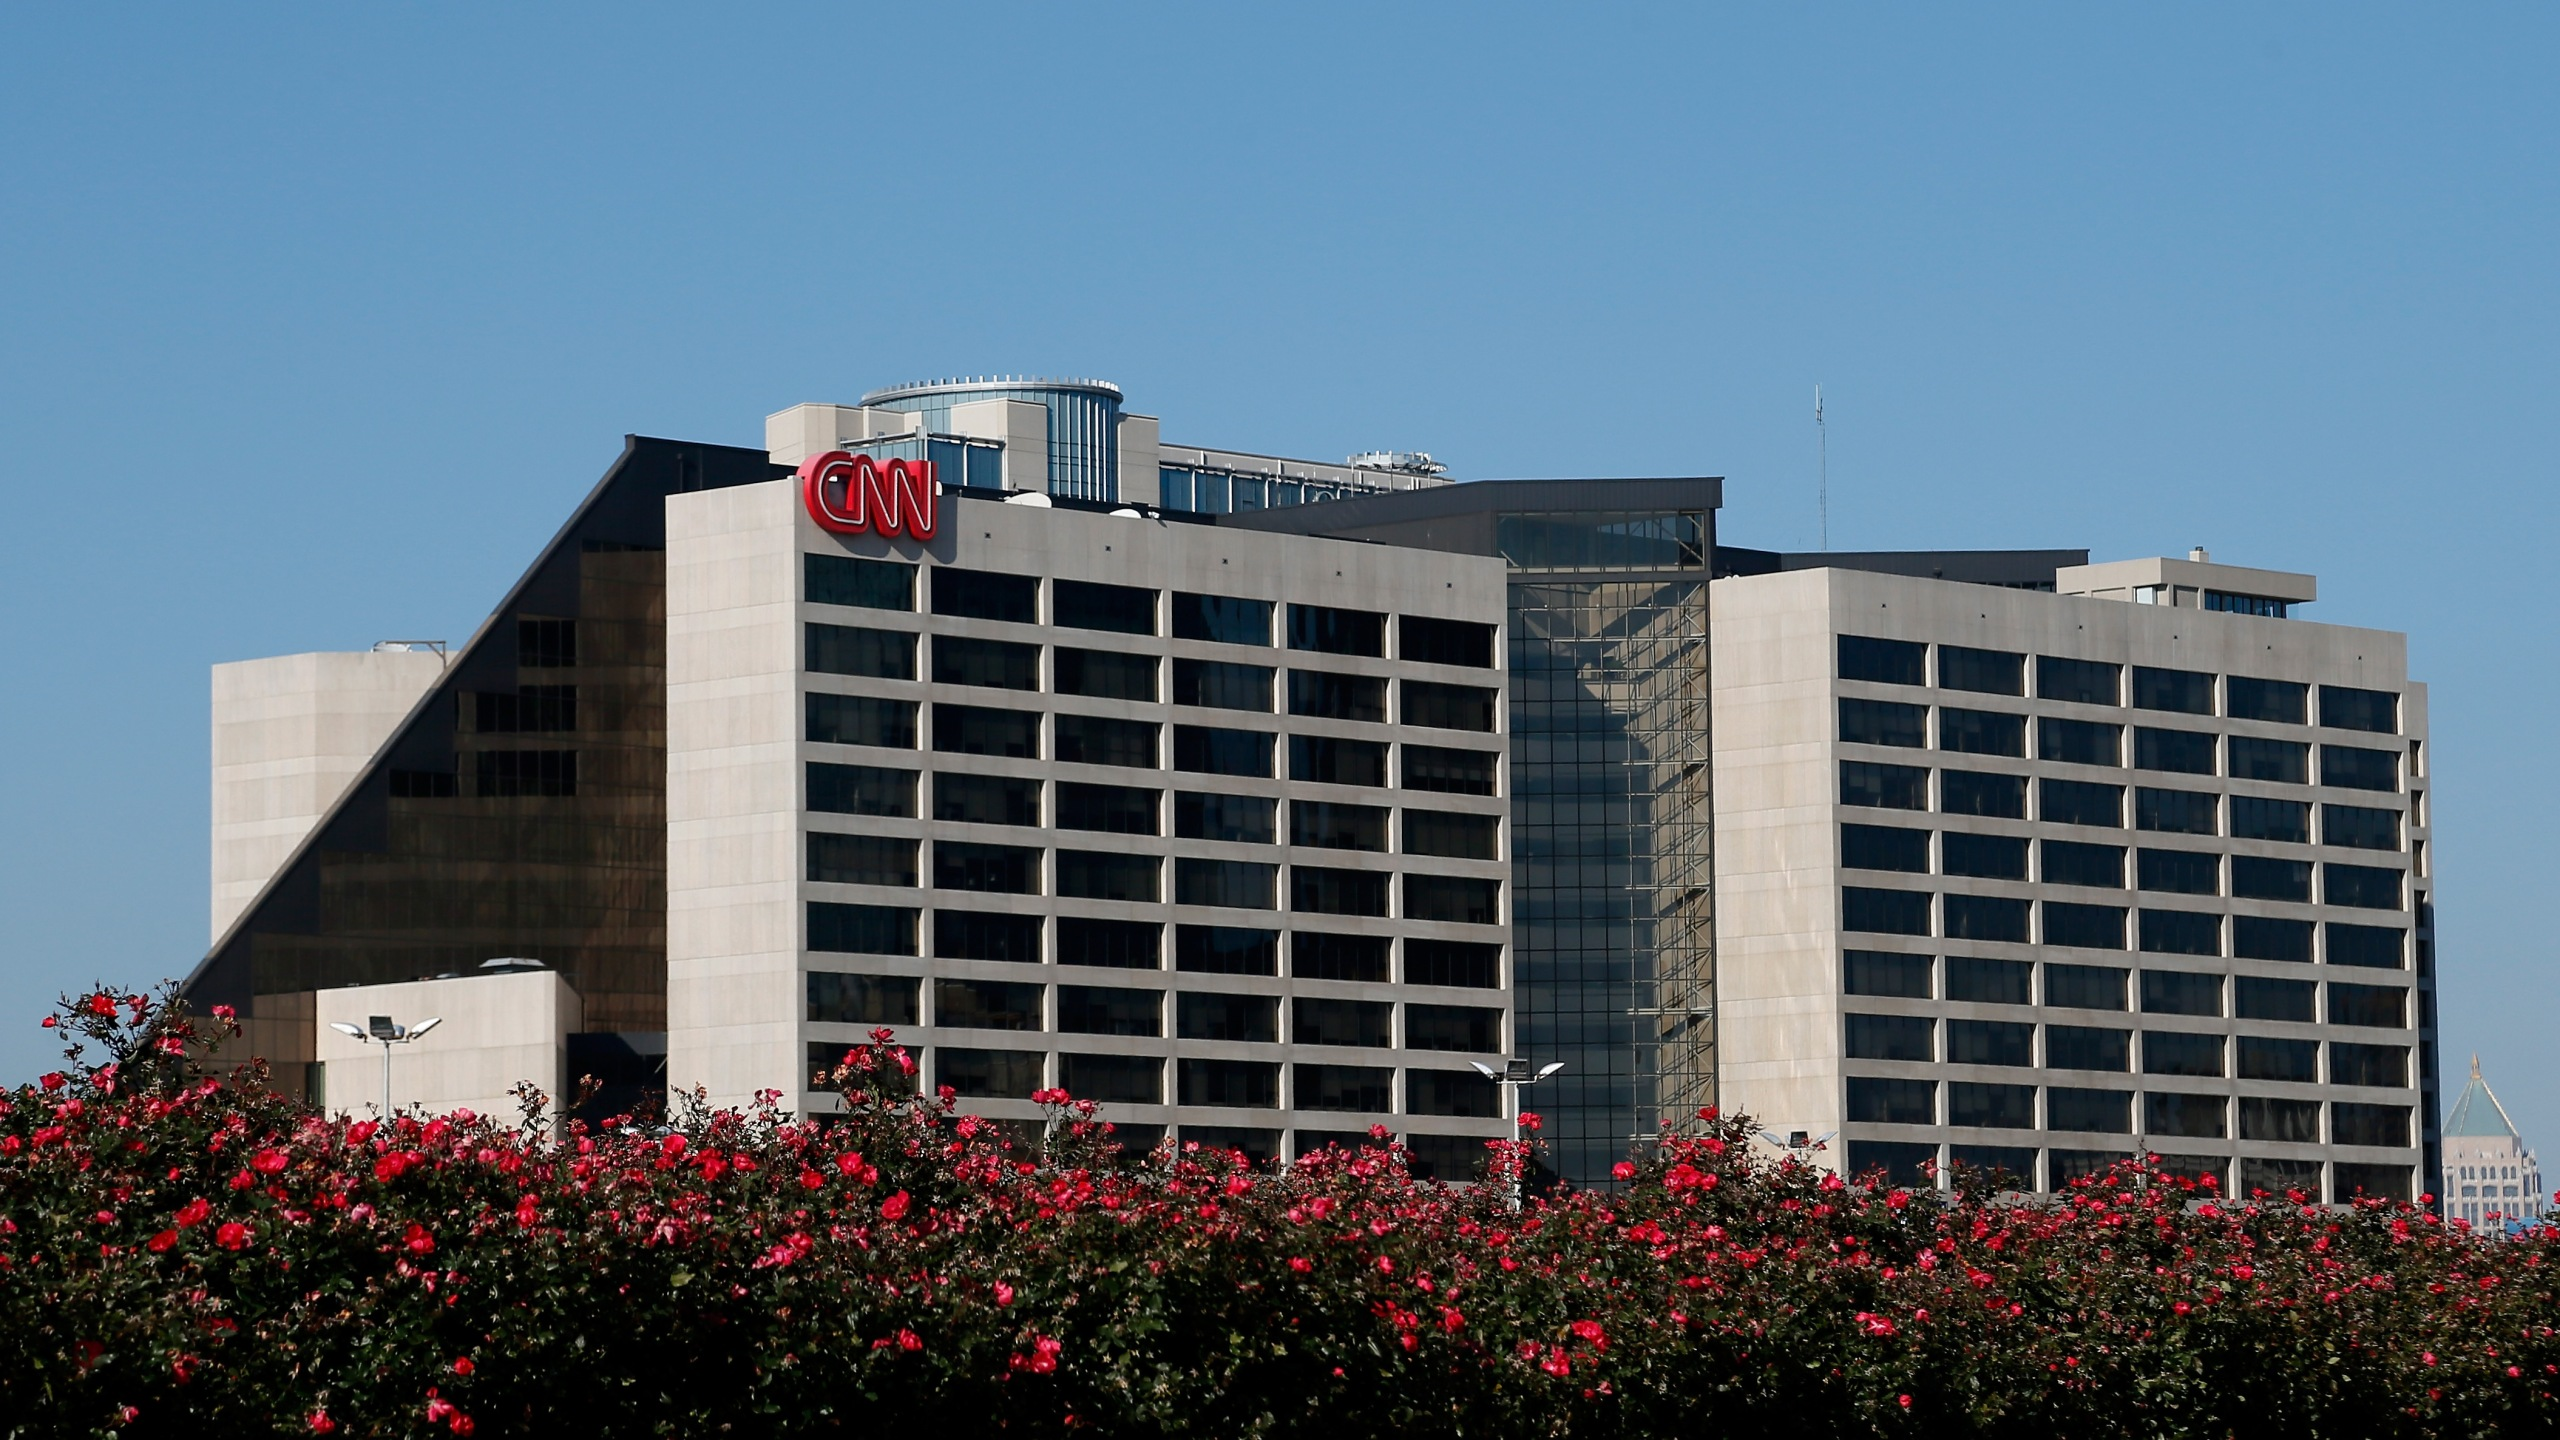 The CNN Center building stands on November 29, 2012 in Atlanta, Georgia. (Credit: Kevin C. Cox/Getty Images)